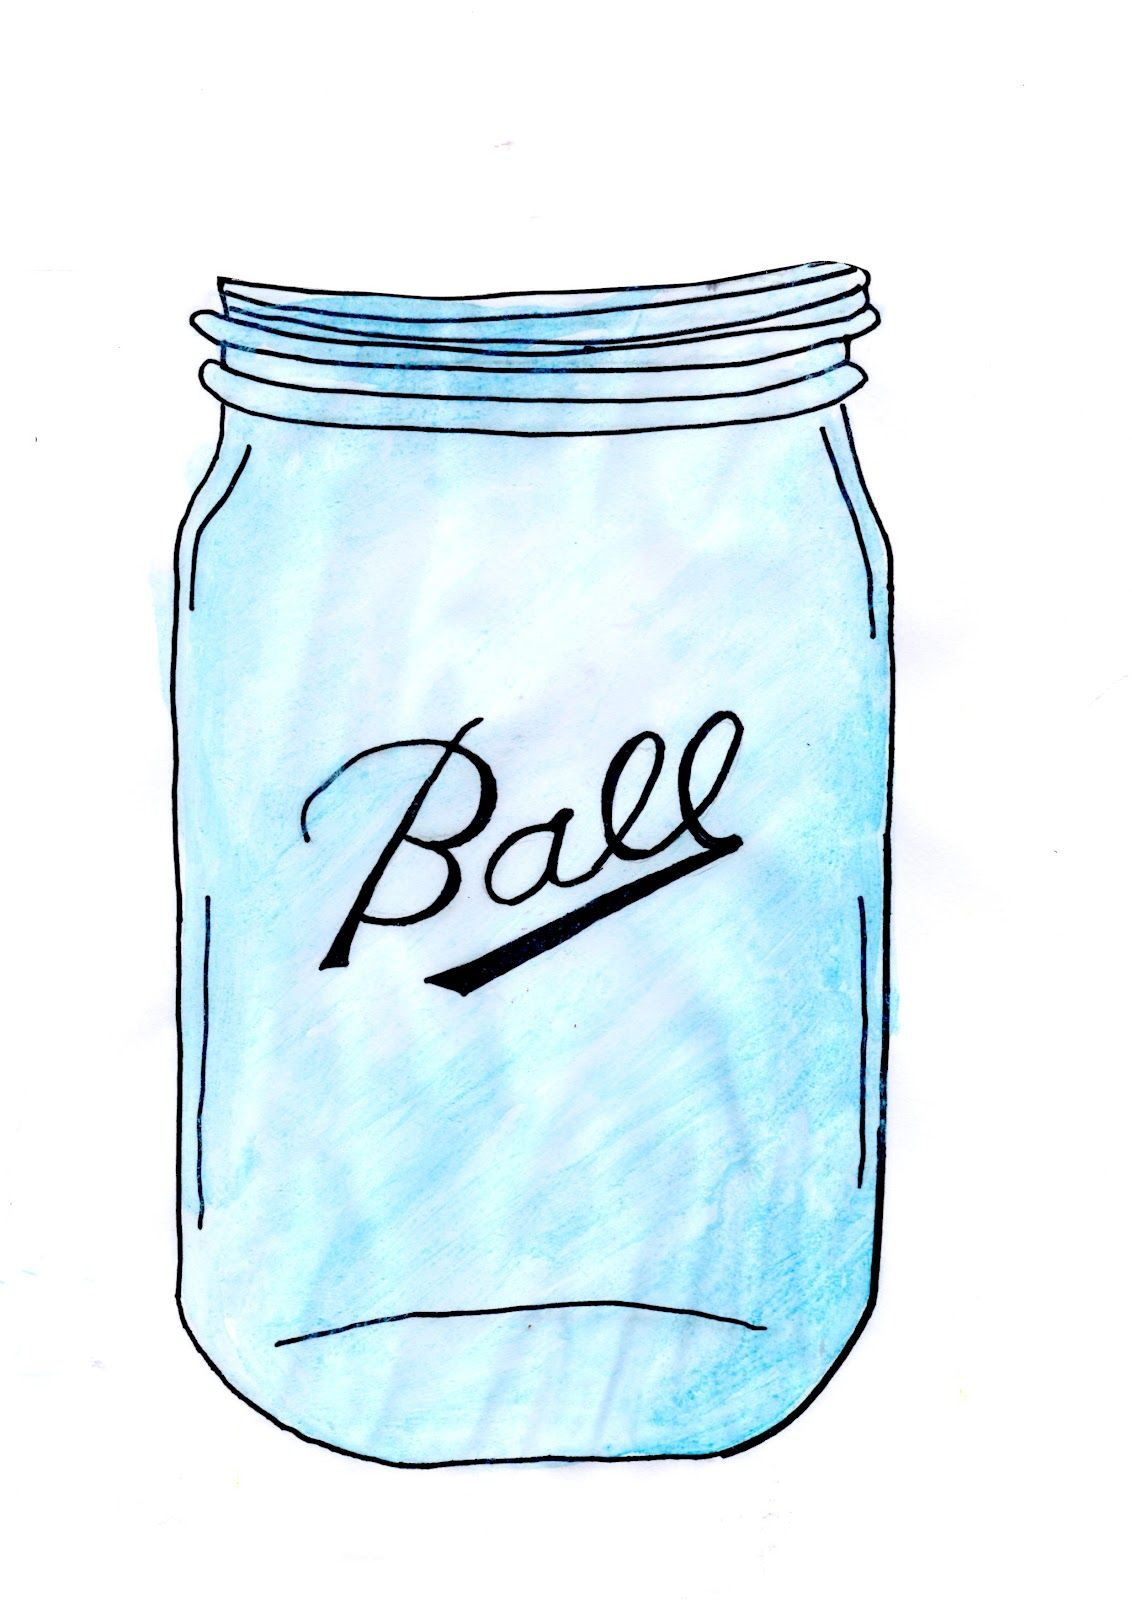 Ball mason jar clipart 6 » Clipart Station.